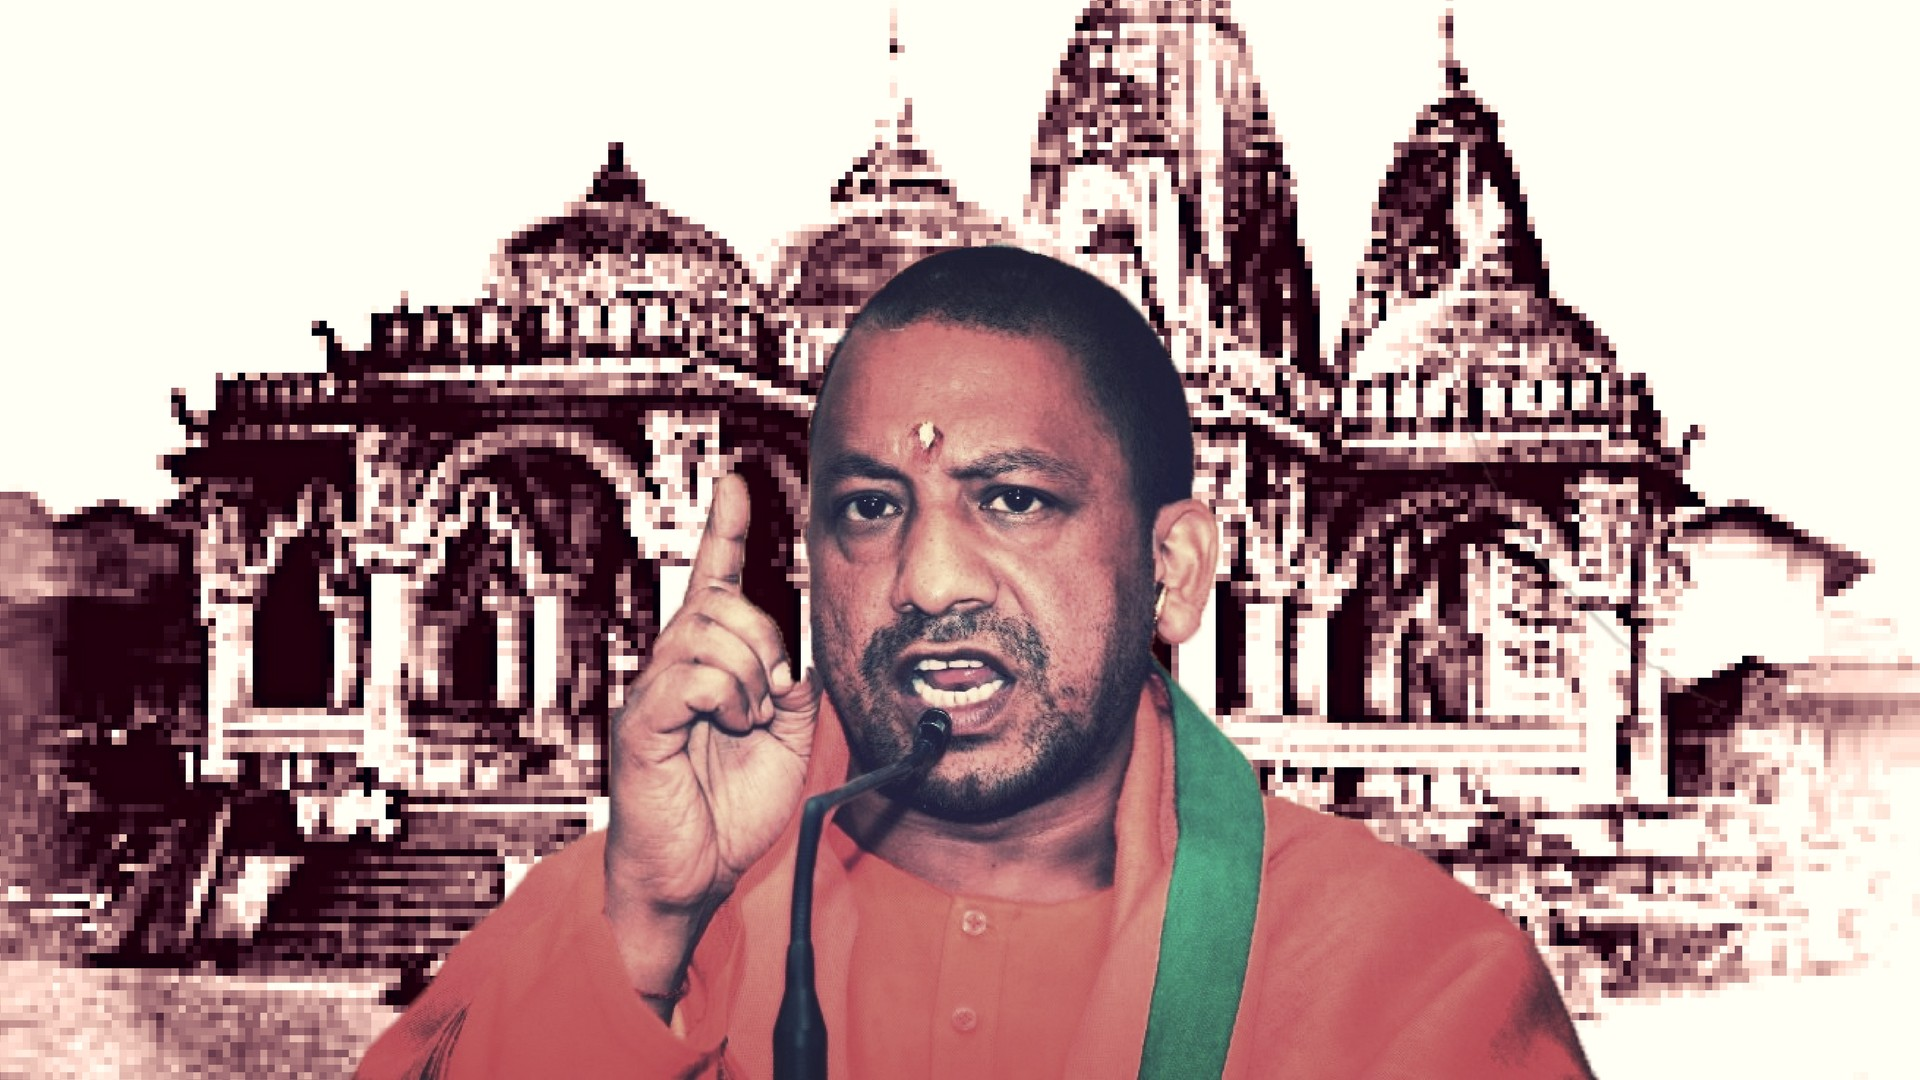 Hd wallpaper yogi adityanath - Hd Wallpaper Yogi Adityanath 48